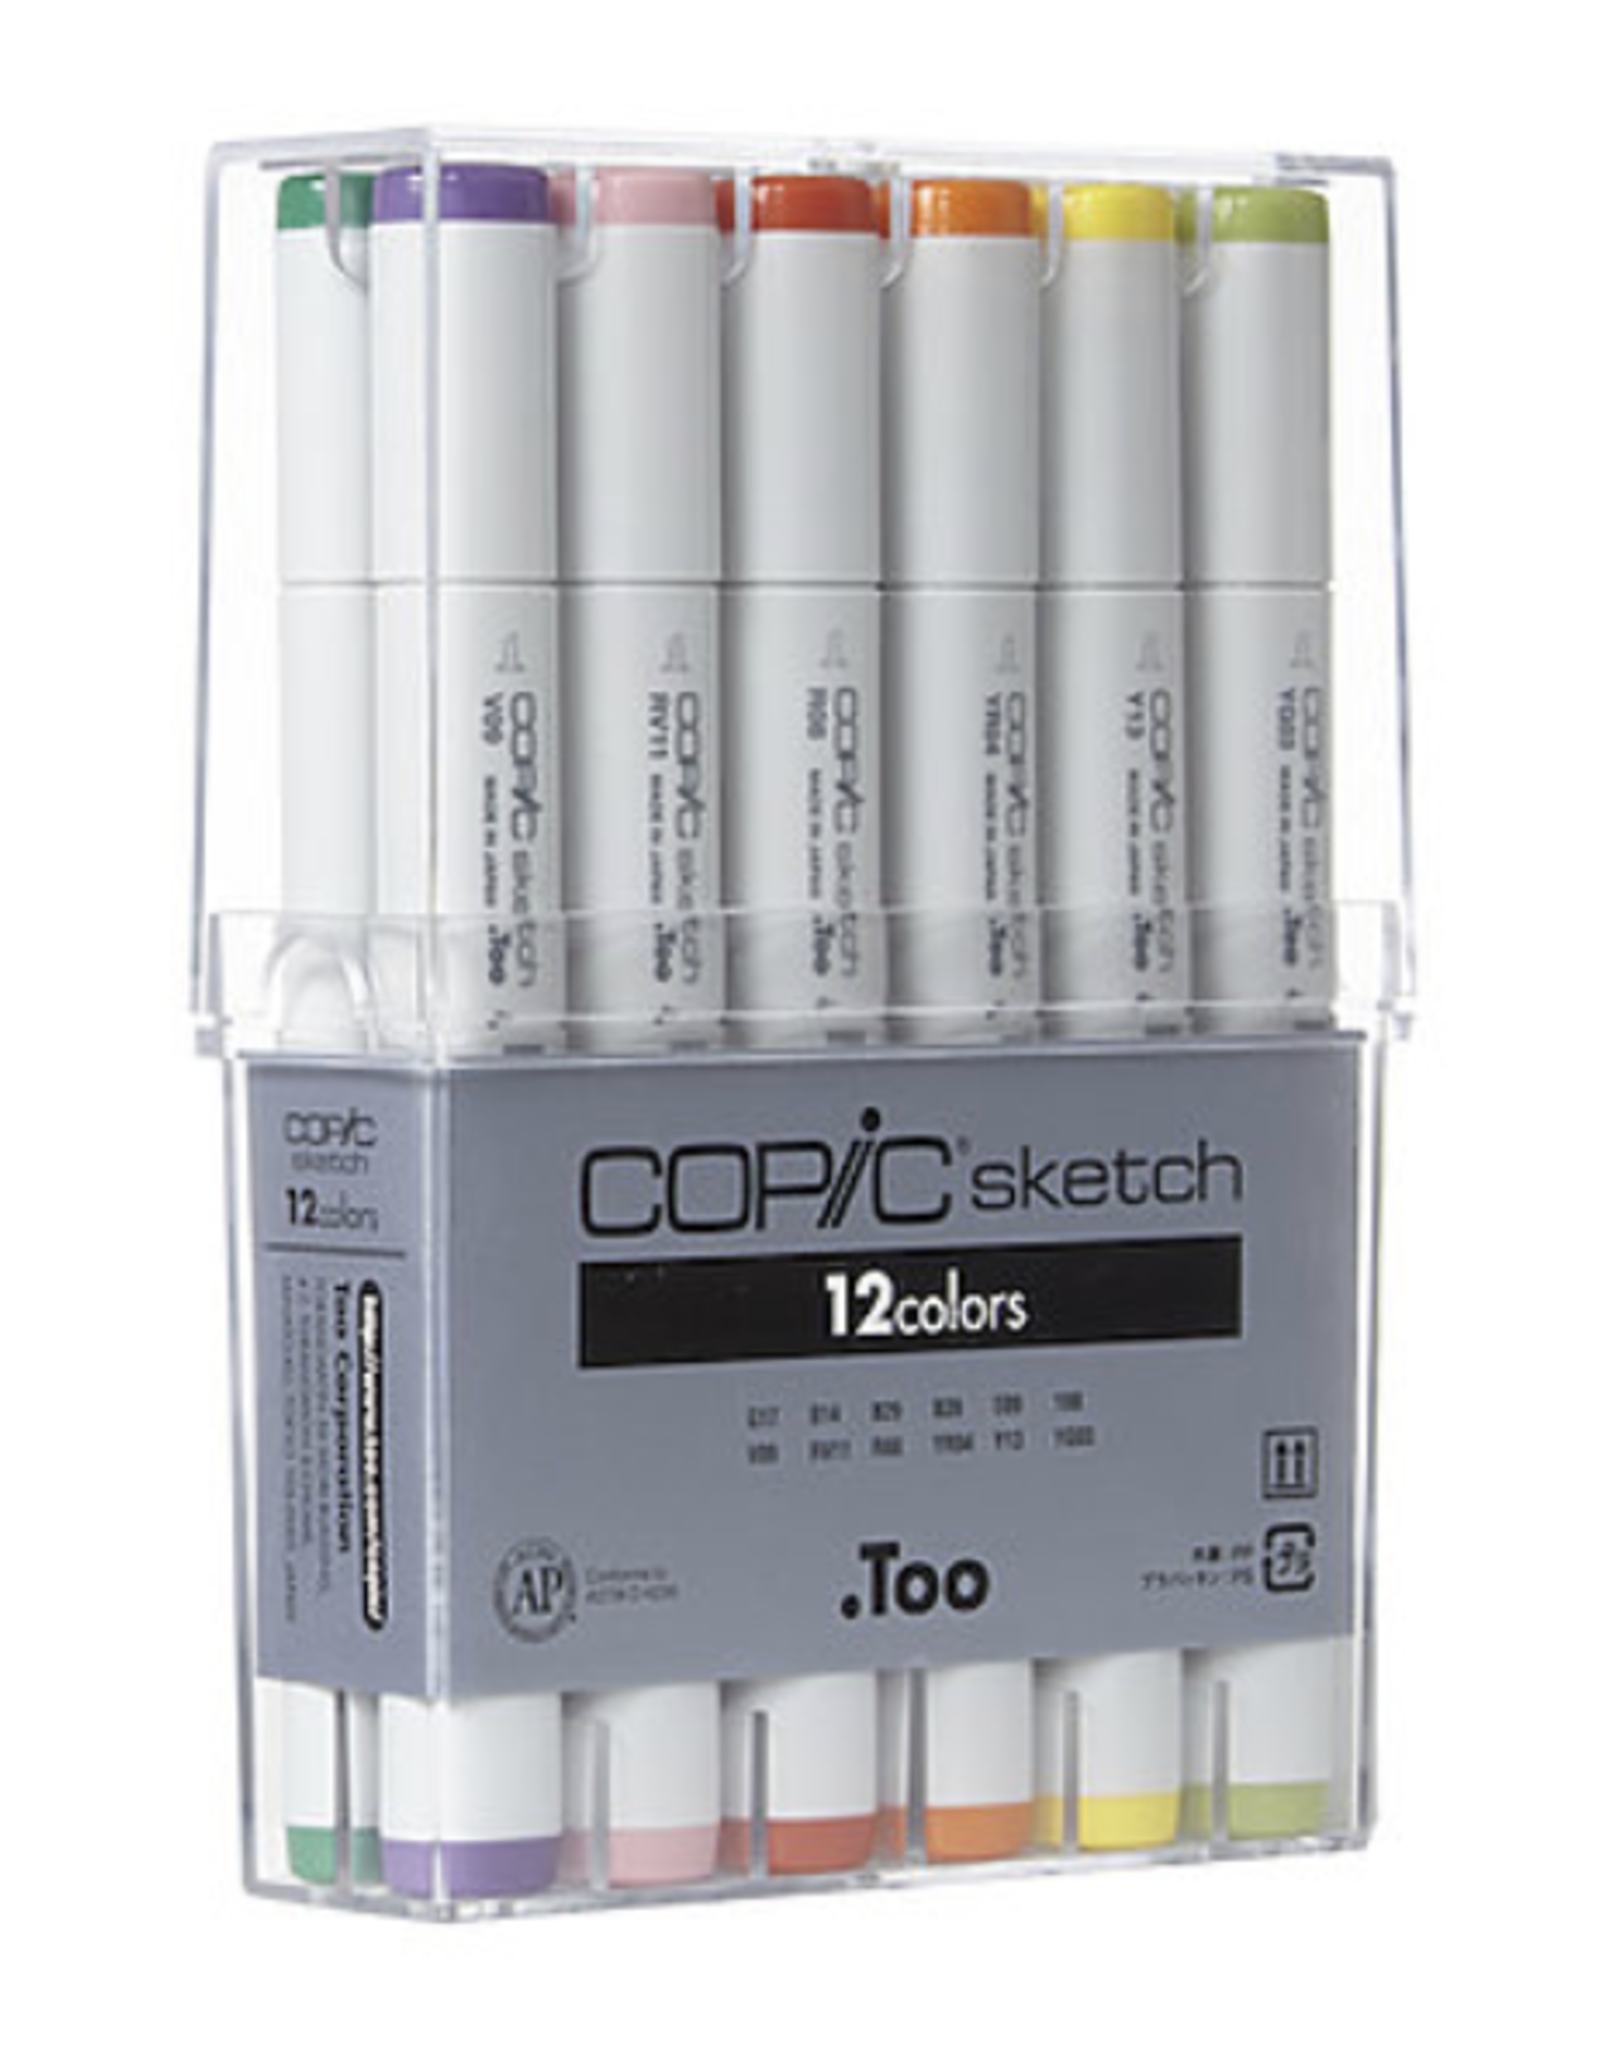 Copic Sketch Marker, Basic Set of 12 Colors